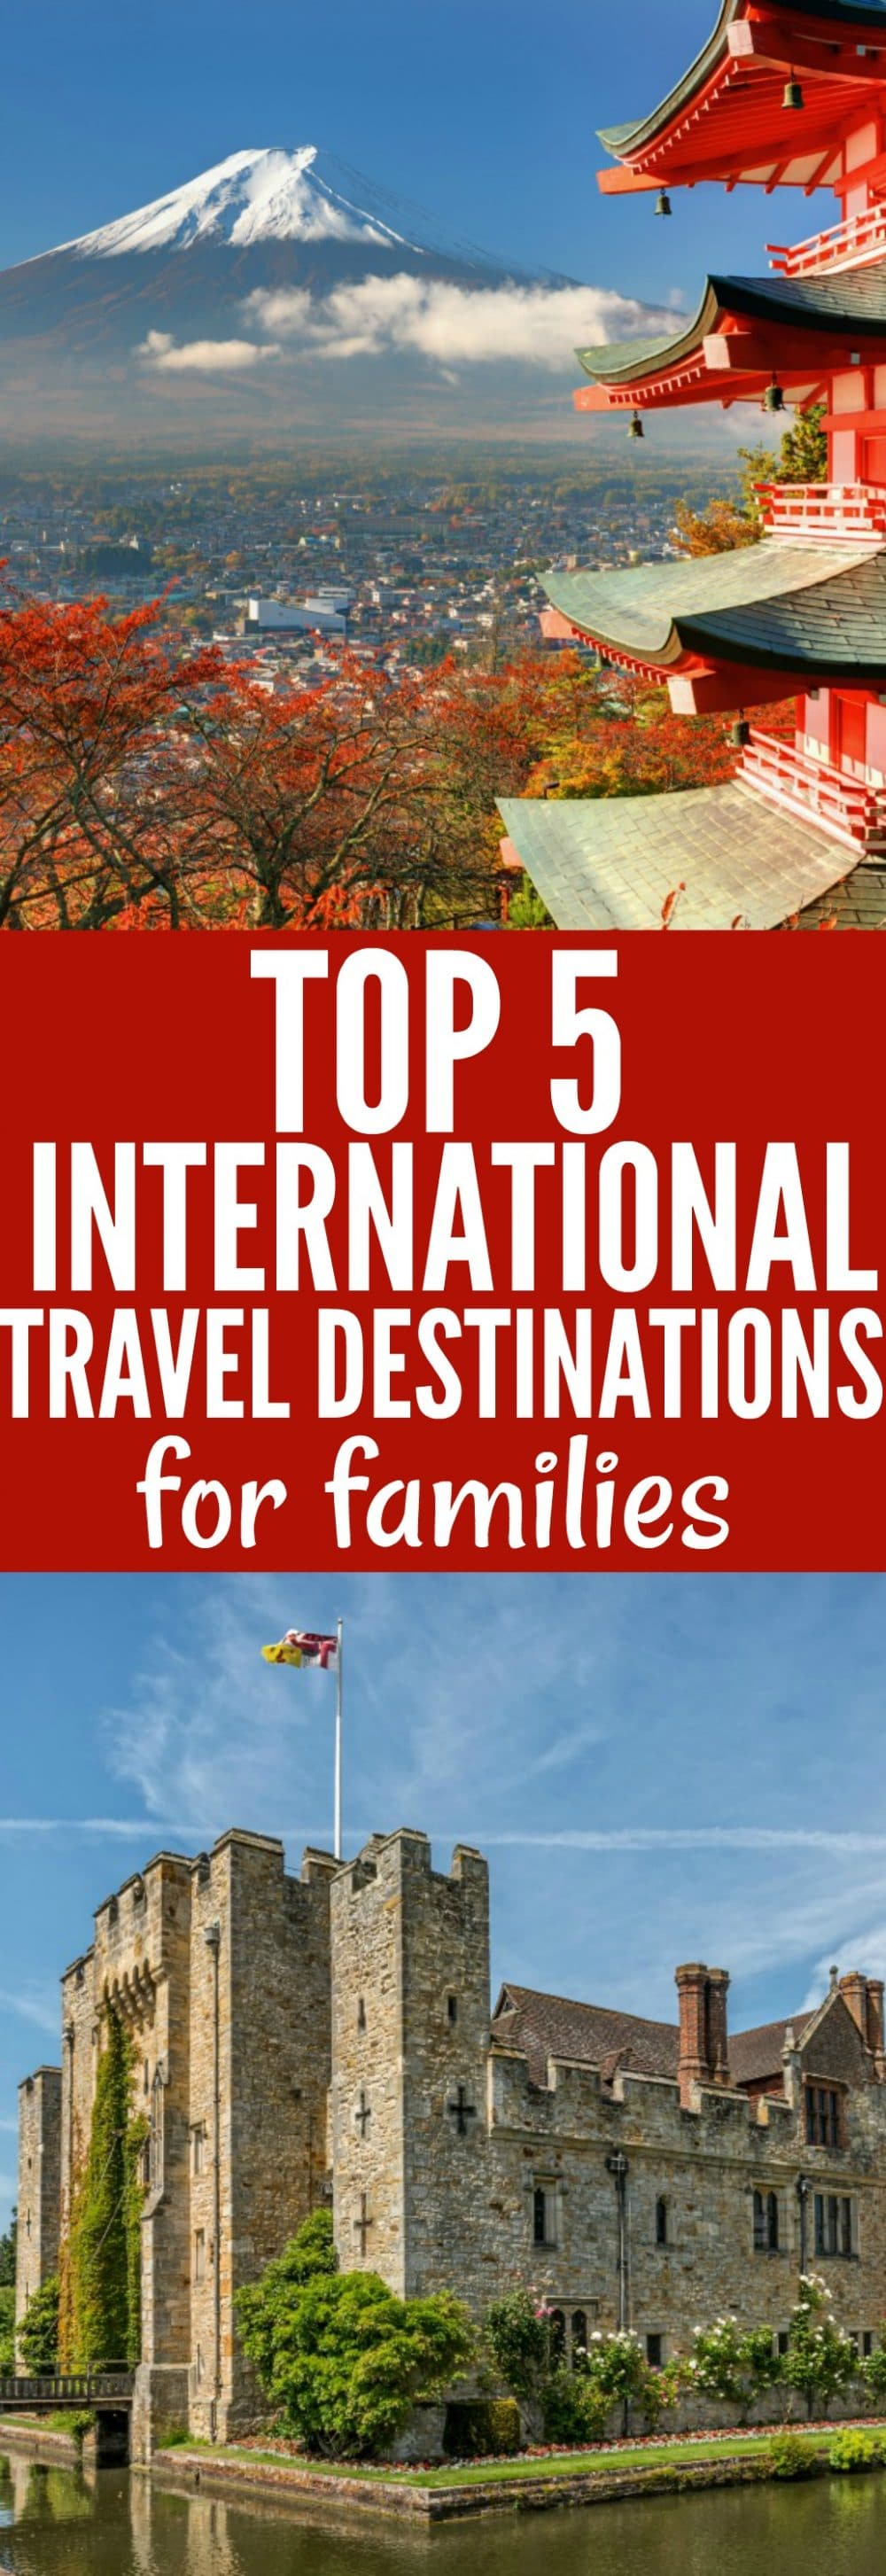 Top 5 International Travel Destinations for families